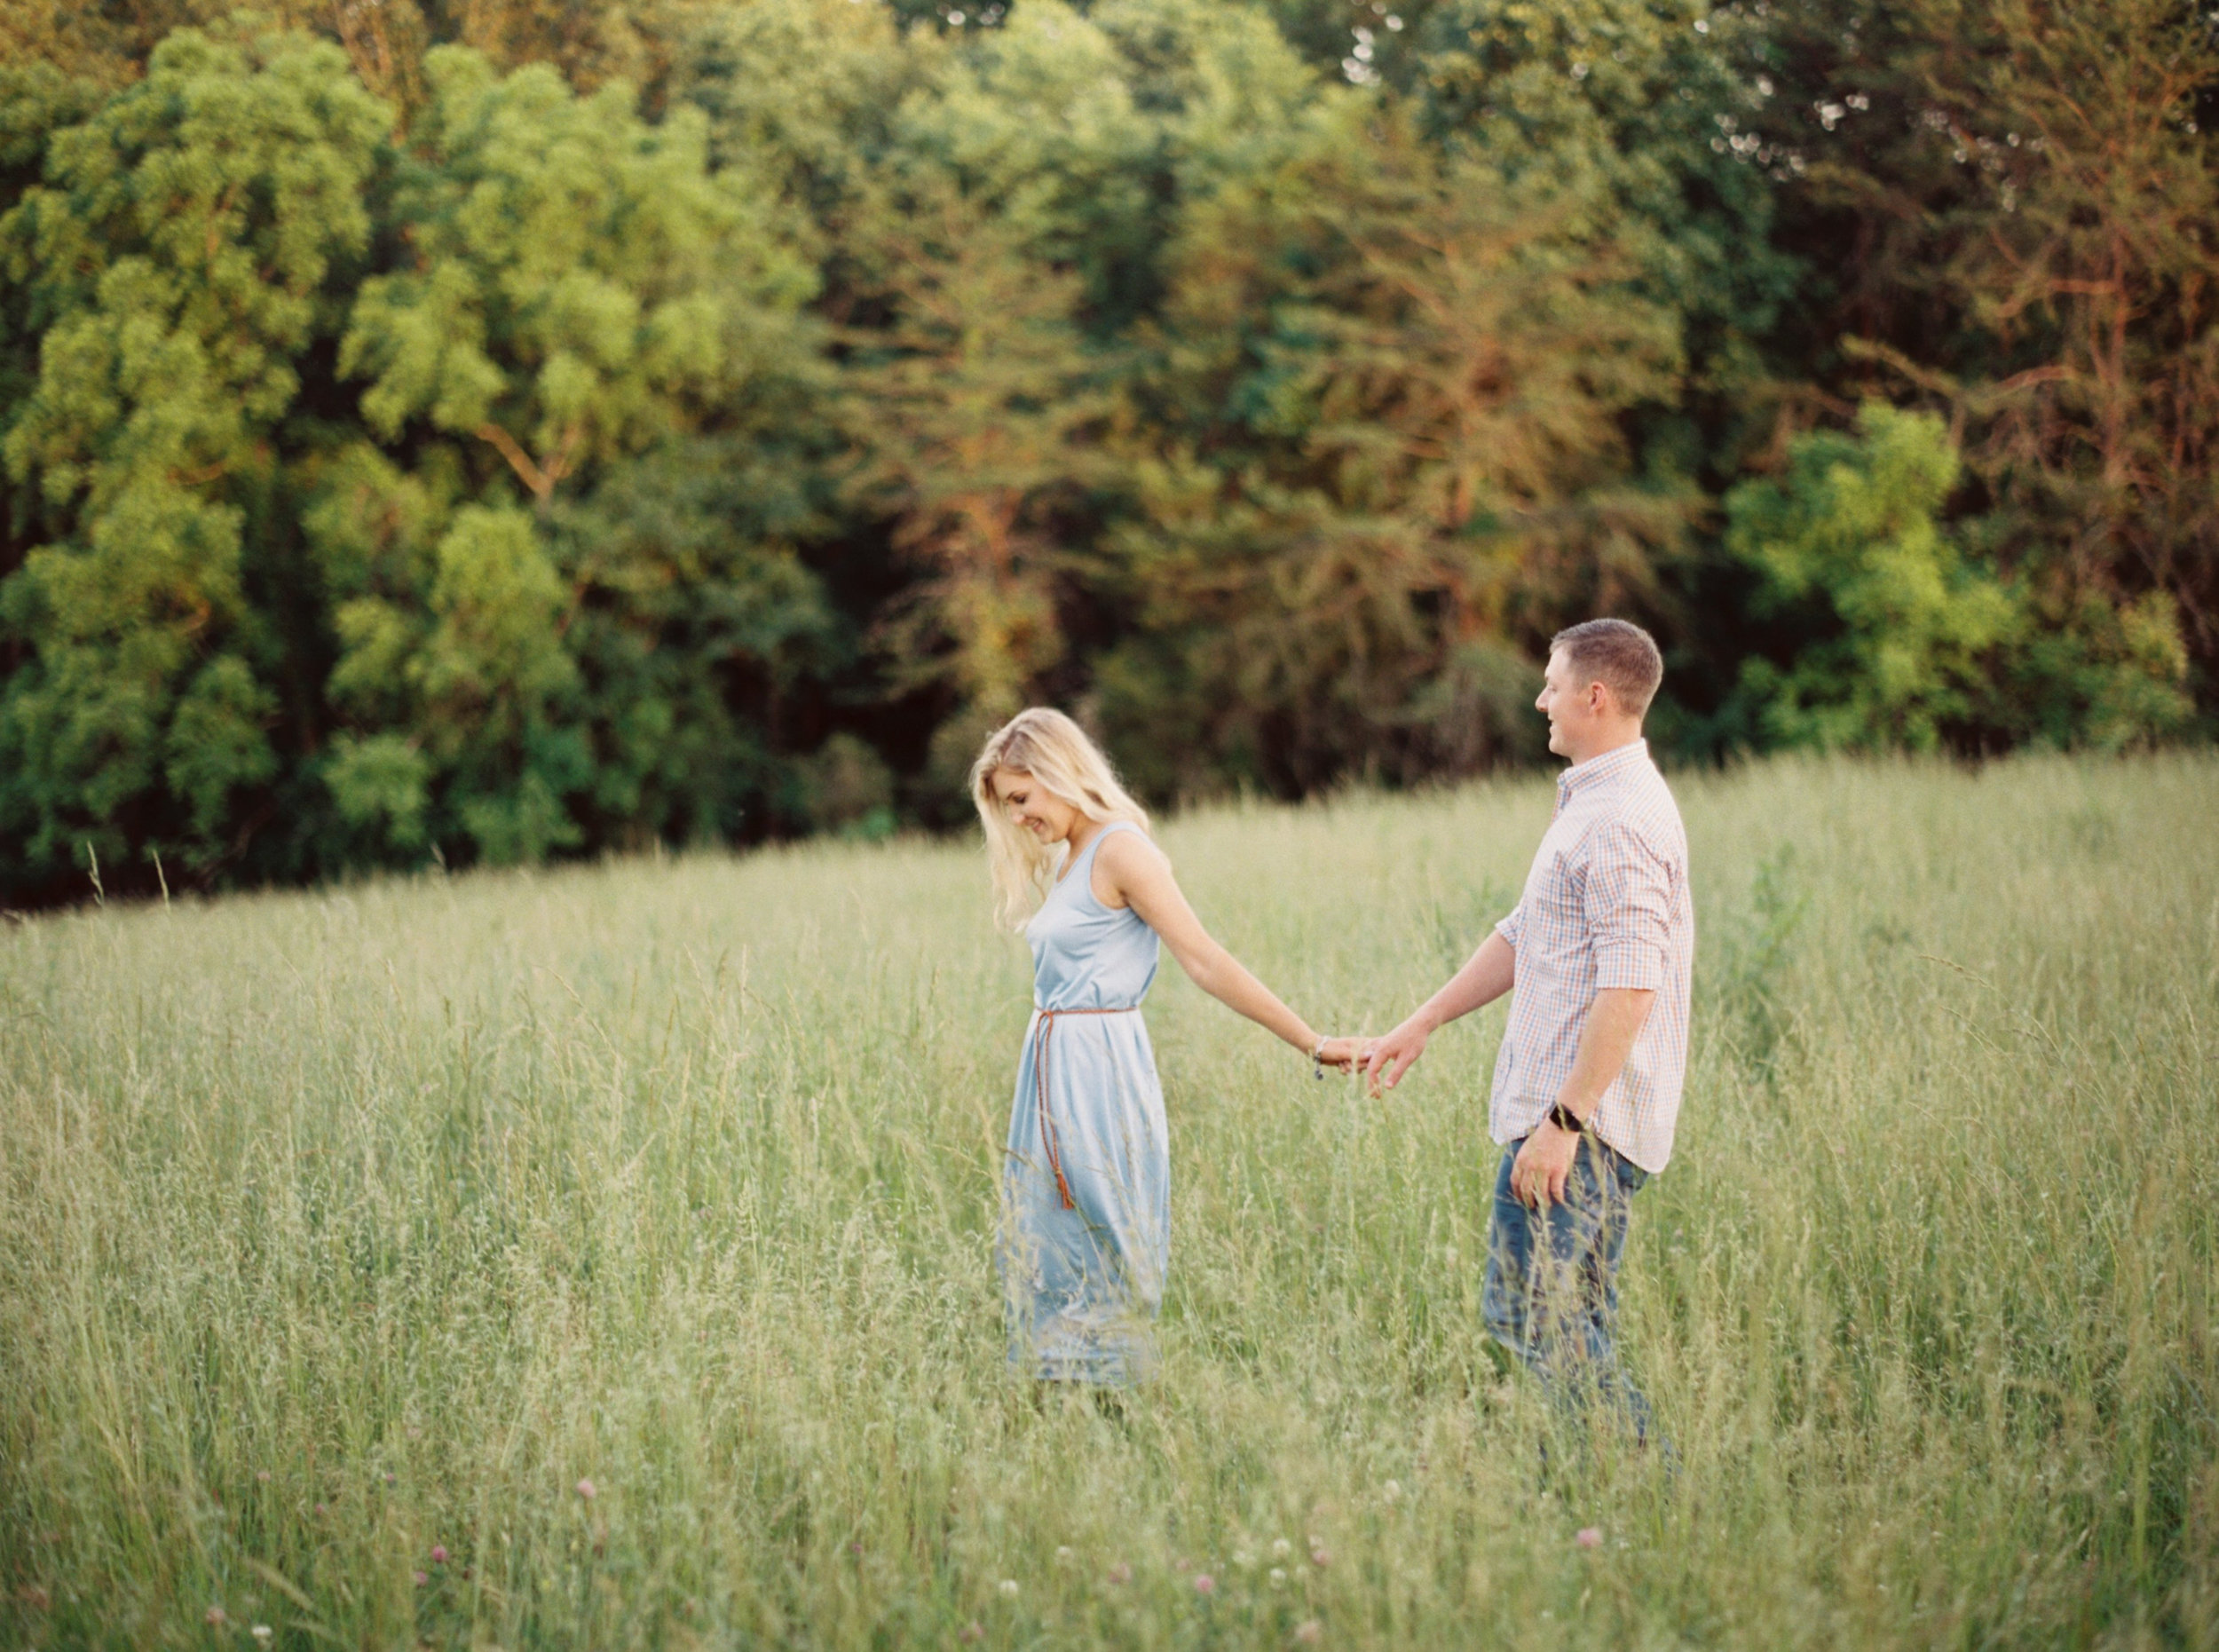 Hannah_Derrick_Engagement_Knoxville_Outdoor_Vineyard_Orchard__Film_Abigail_malone_Photography-142.jpg